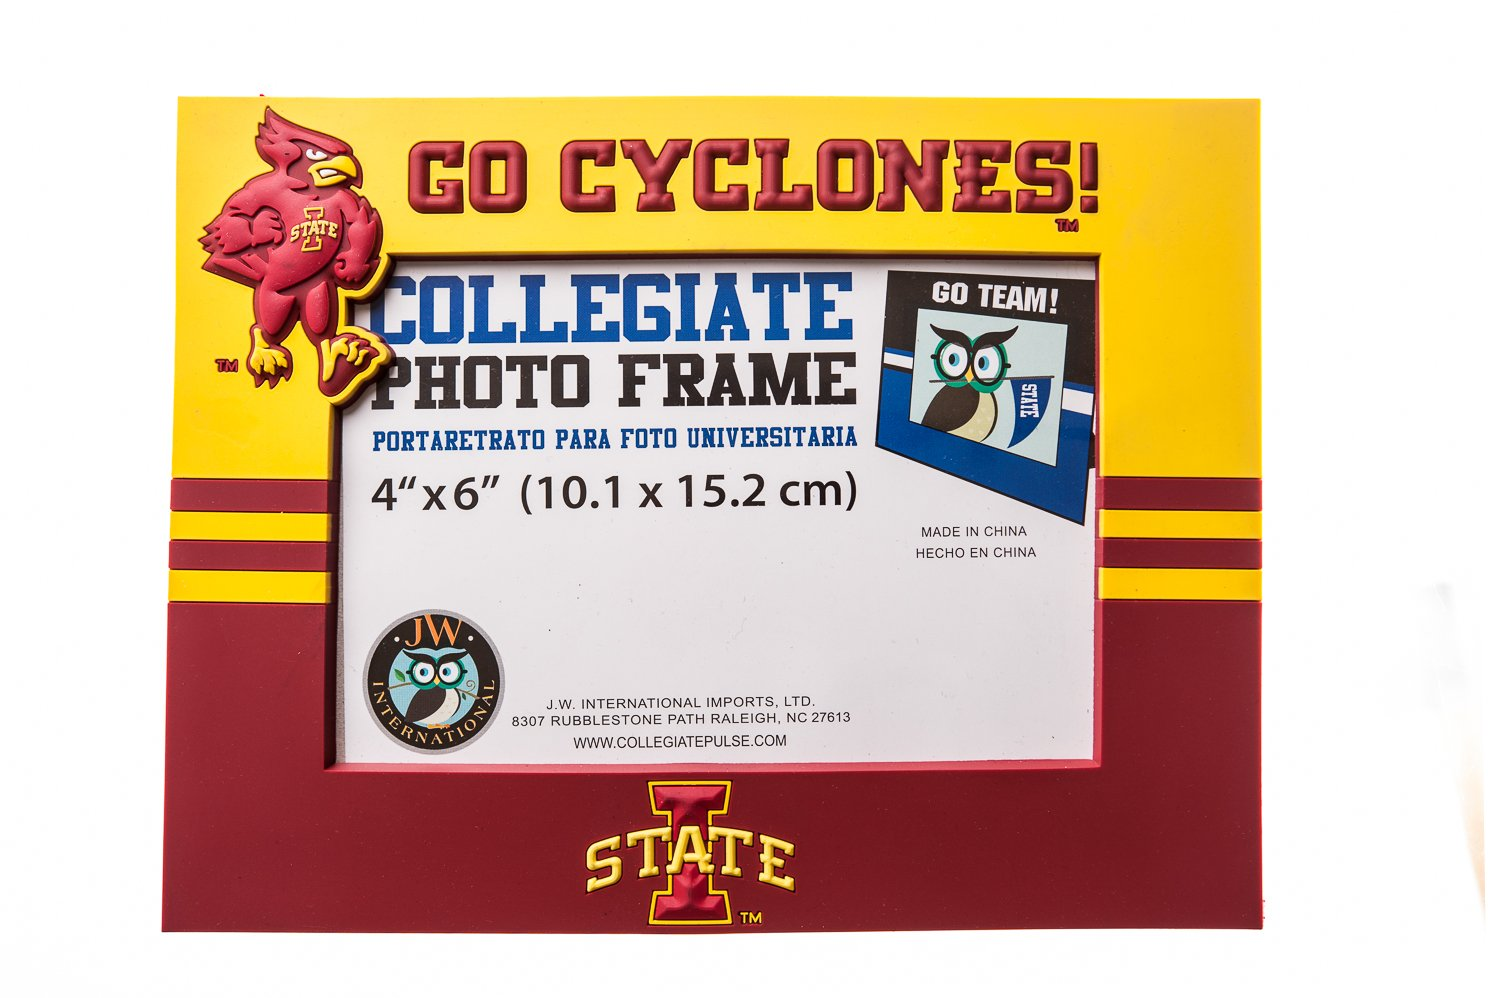 Amazon.com : Collegiate Pulse IOWA STATE CYCLONES NCAA PVC PHOTO FRAME : Sports & Outdoors